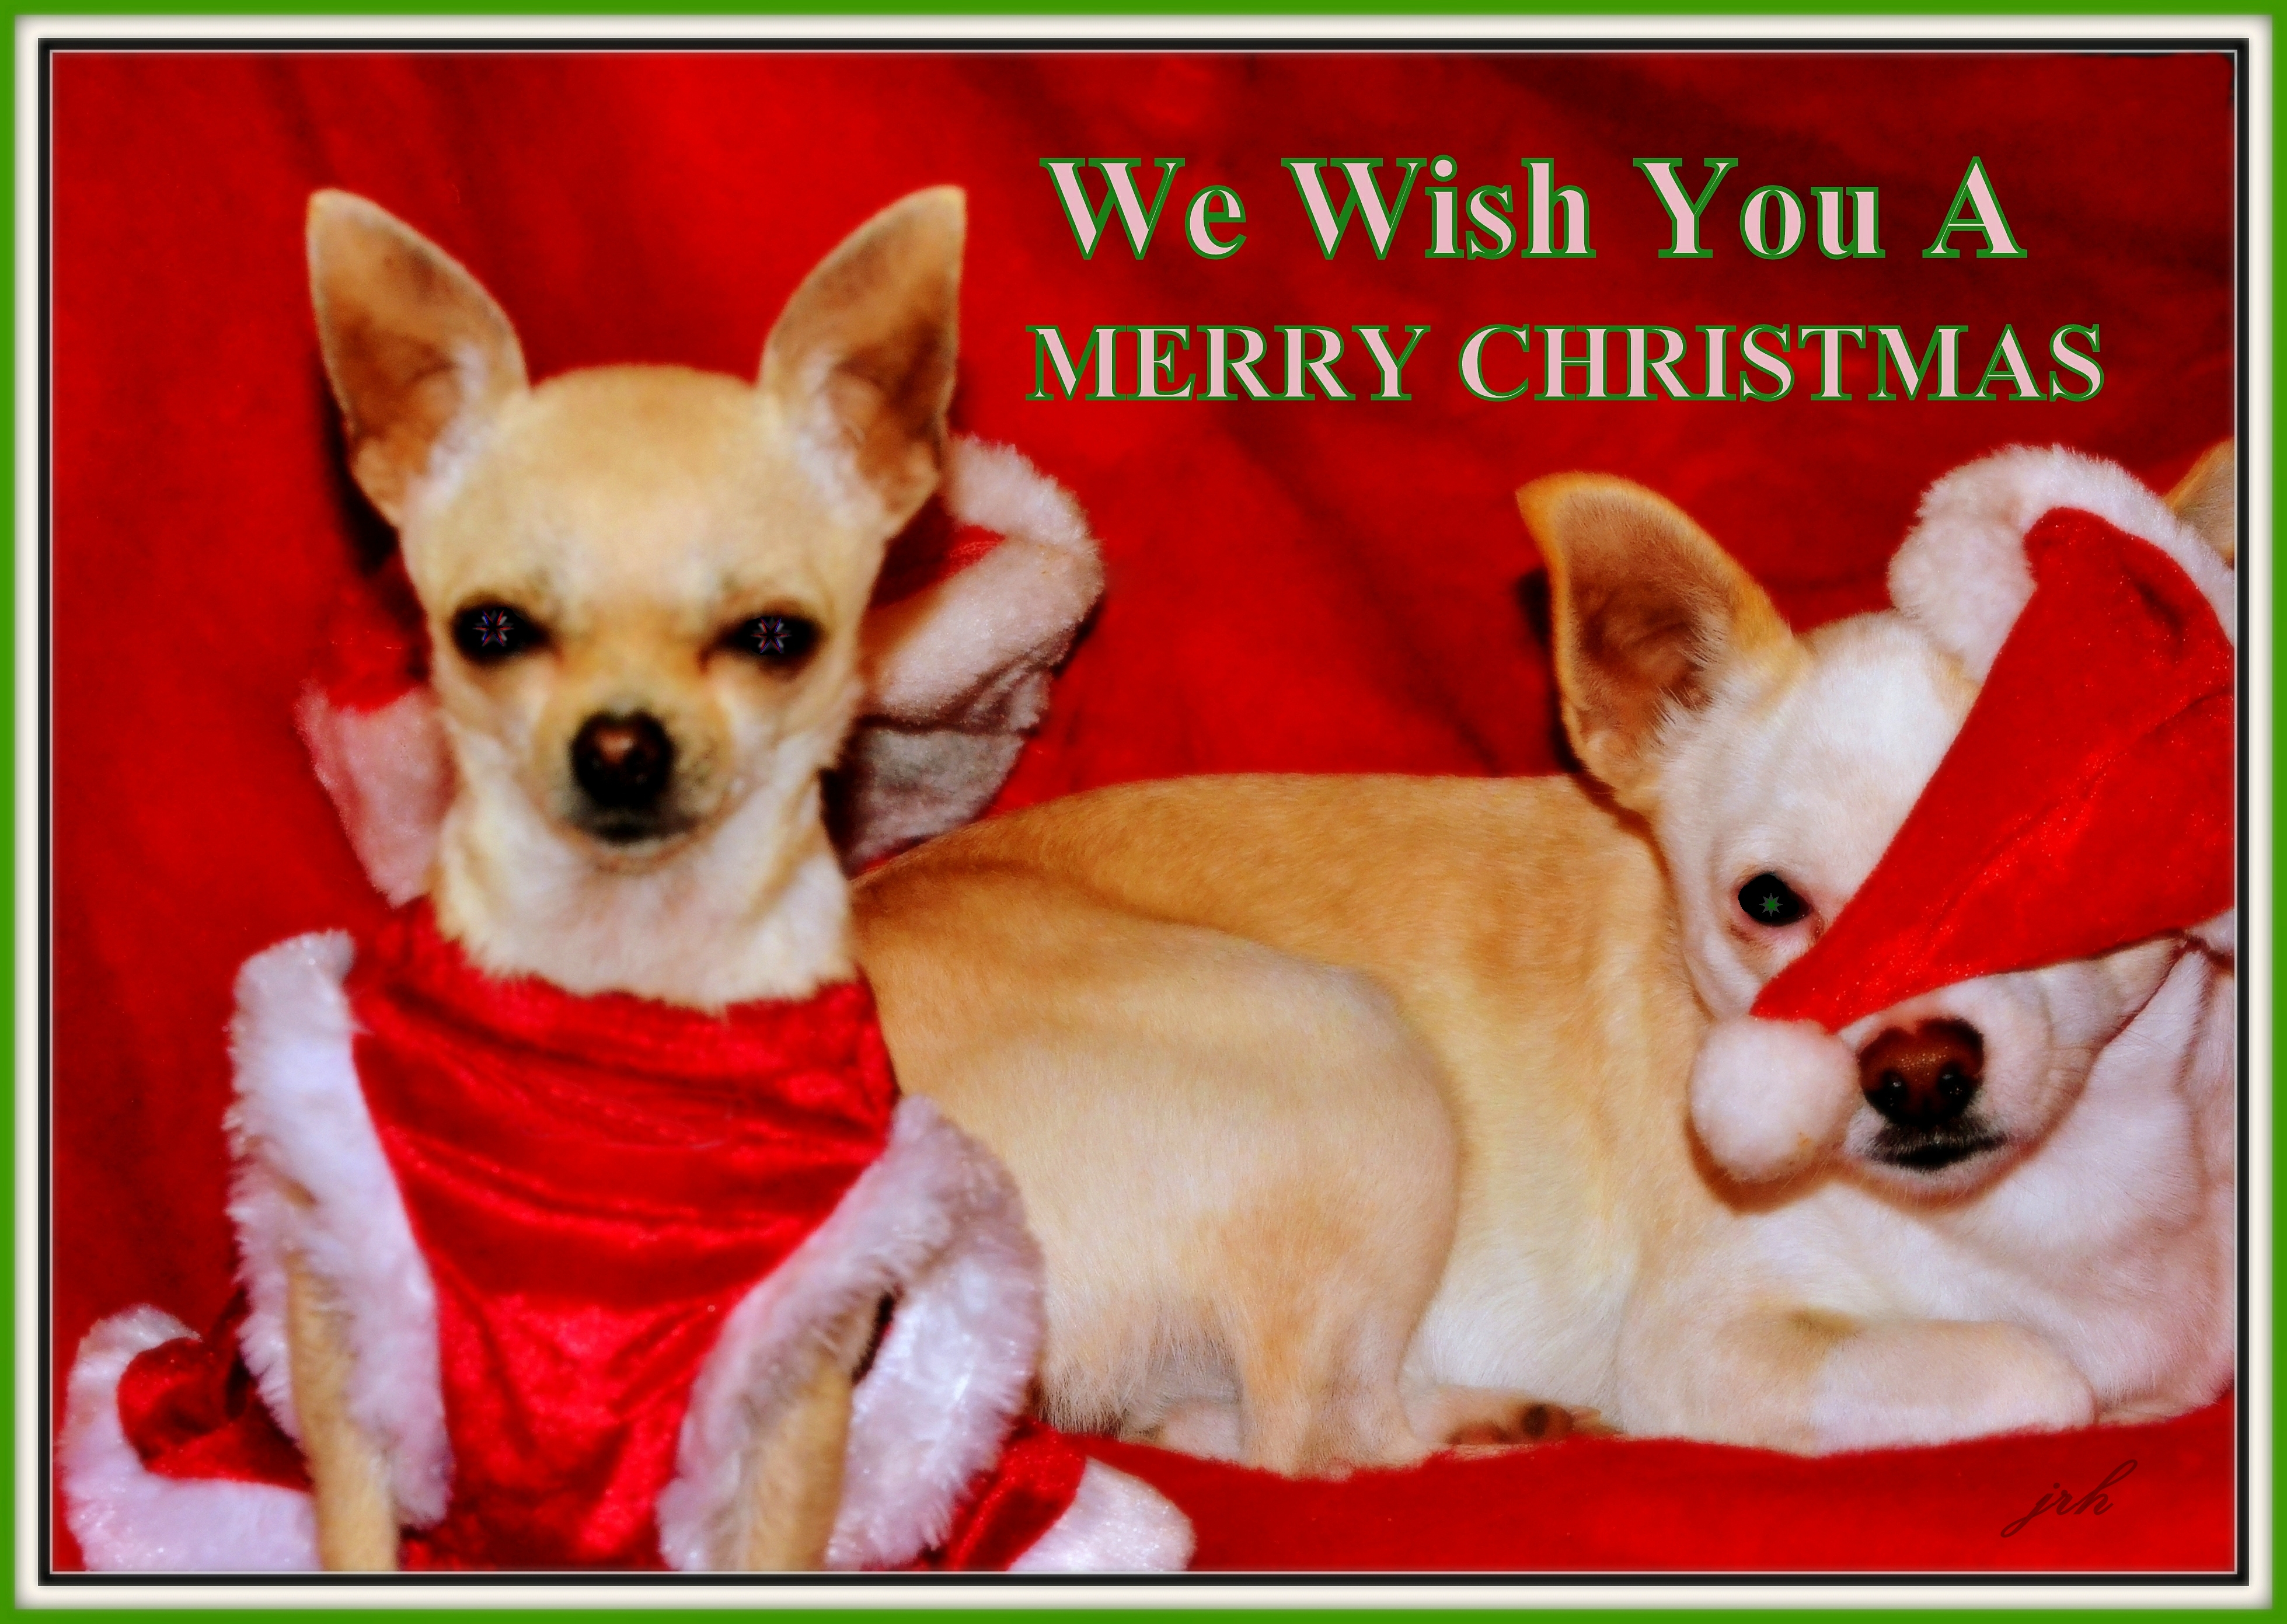 Merry Chritmas from Mia and Buddy card